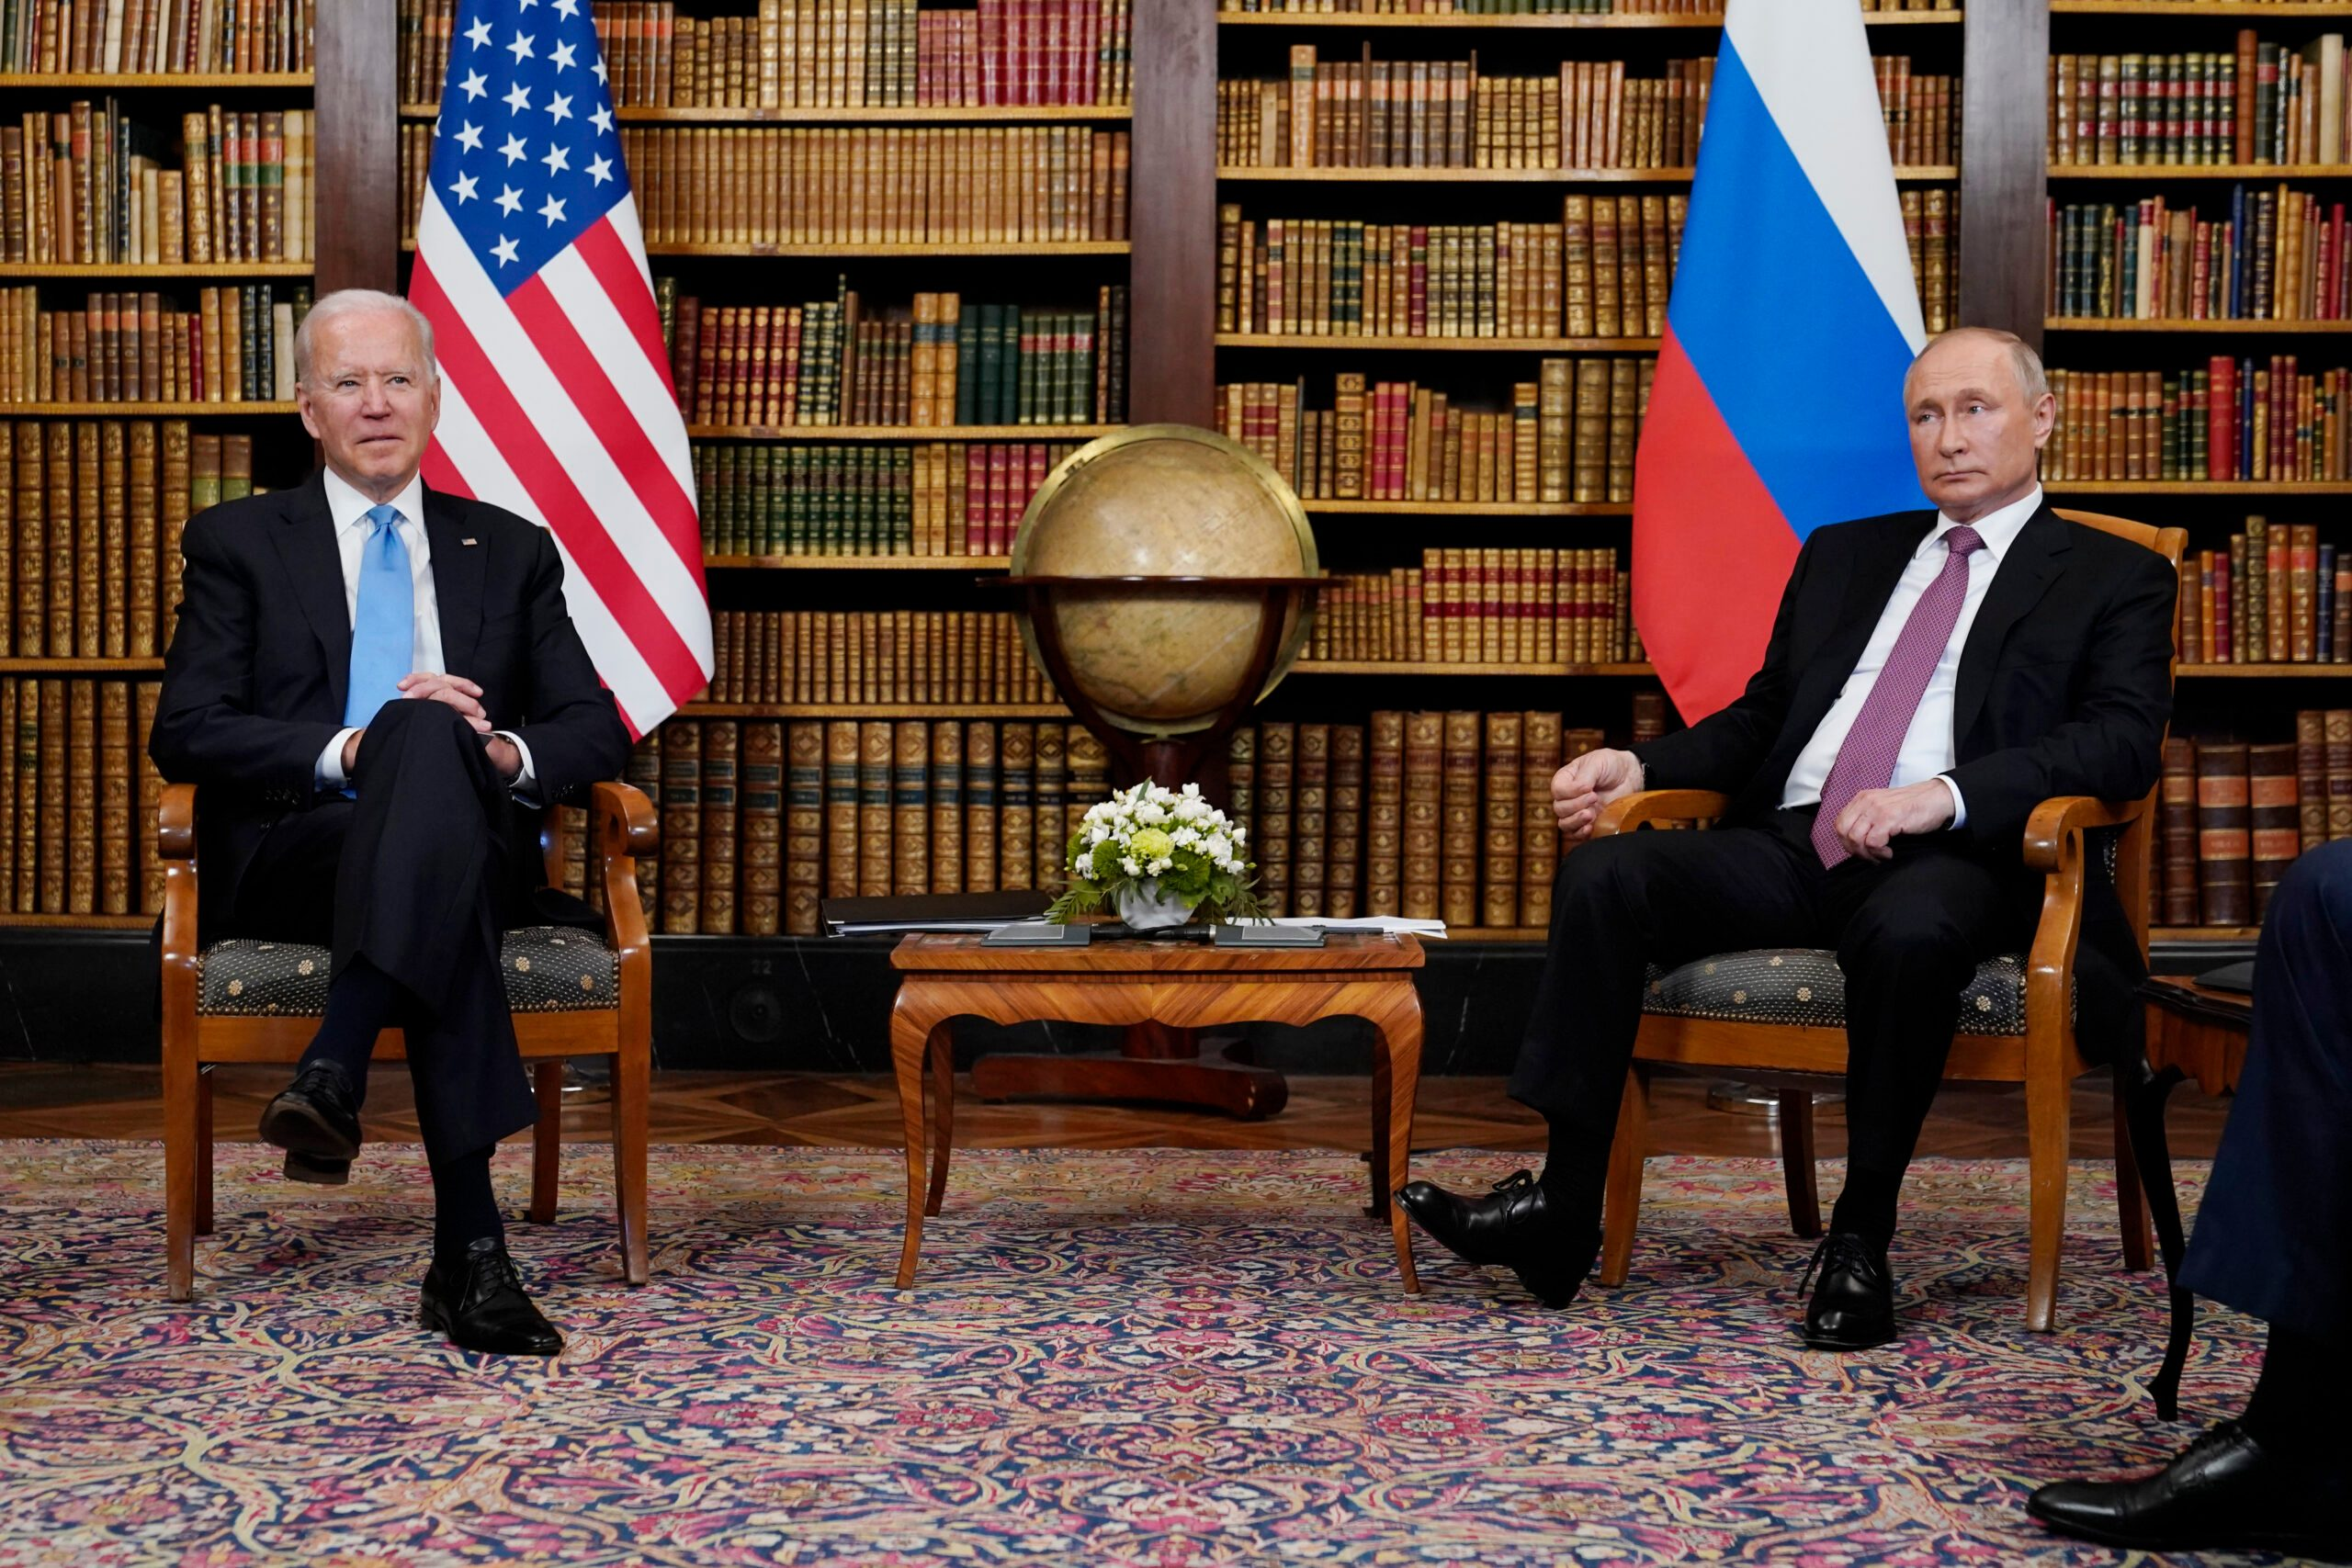 FACT CHECK: Putin's Twisted Tale on Rival; Biden GOP Jab - snopes